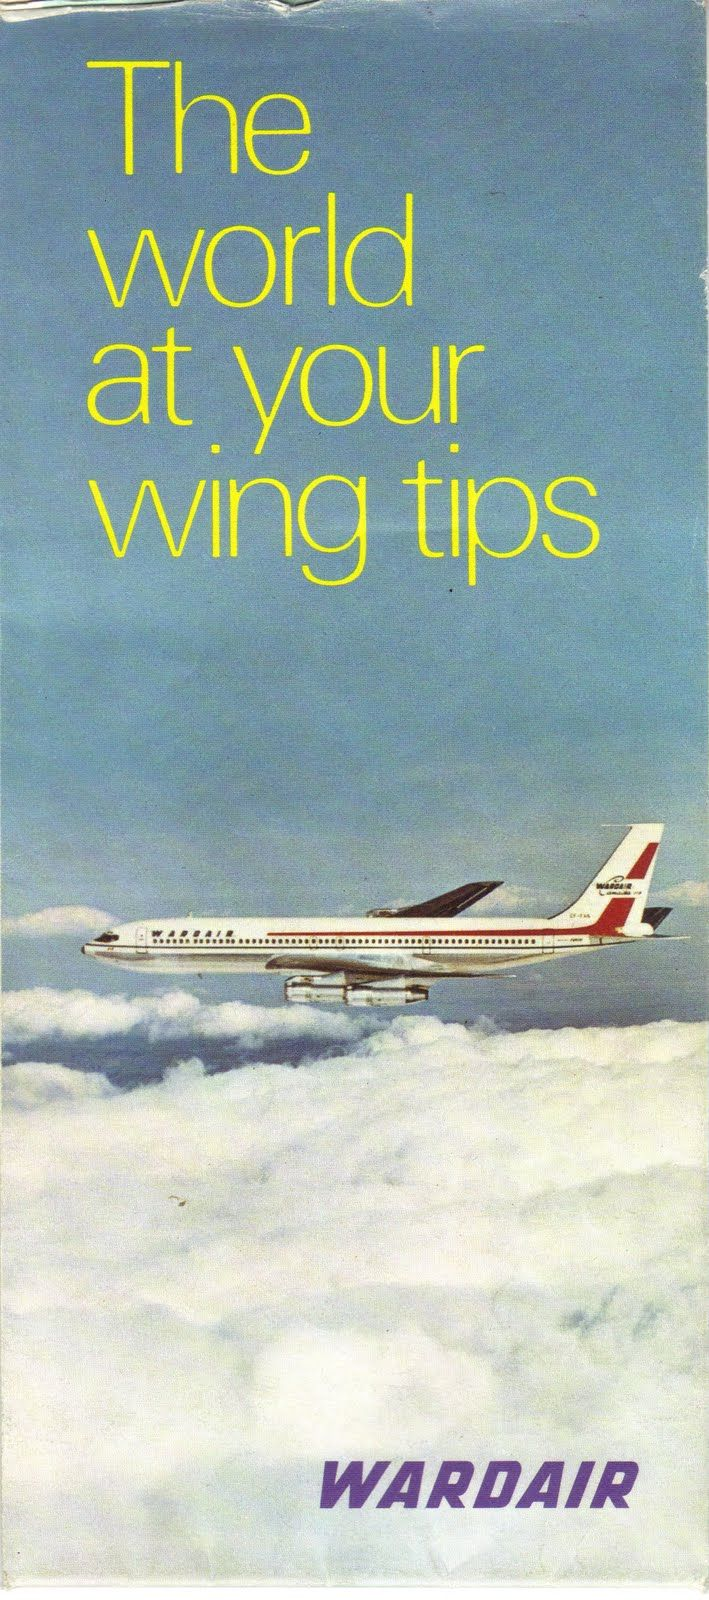 Airlines Past & Present: Wardair